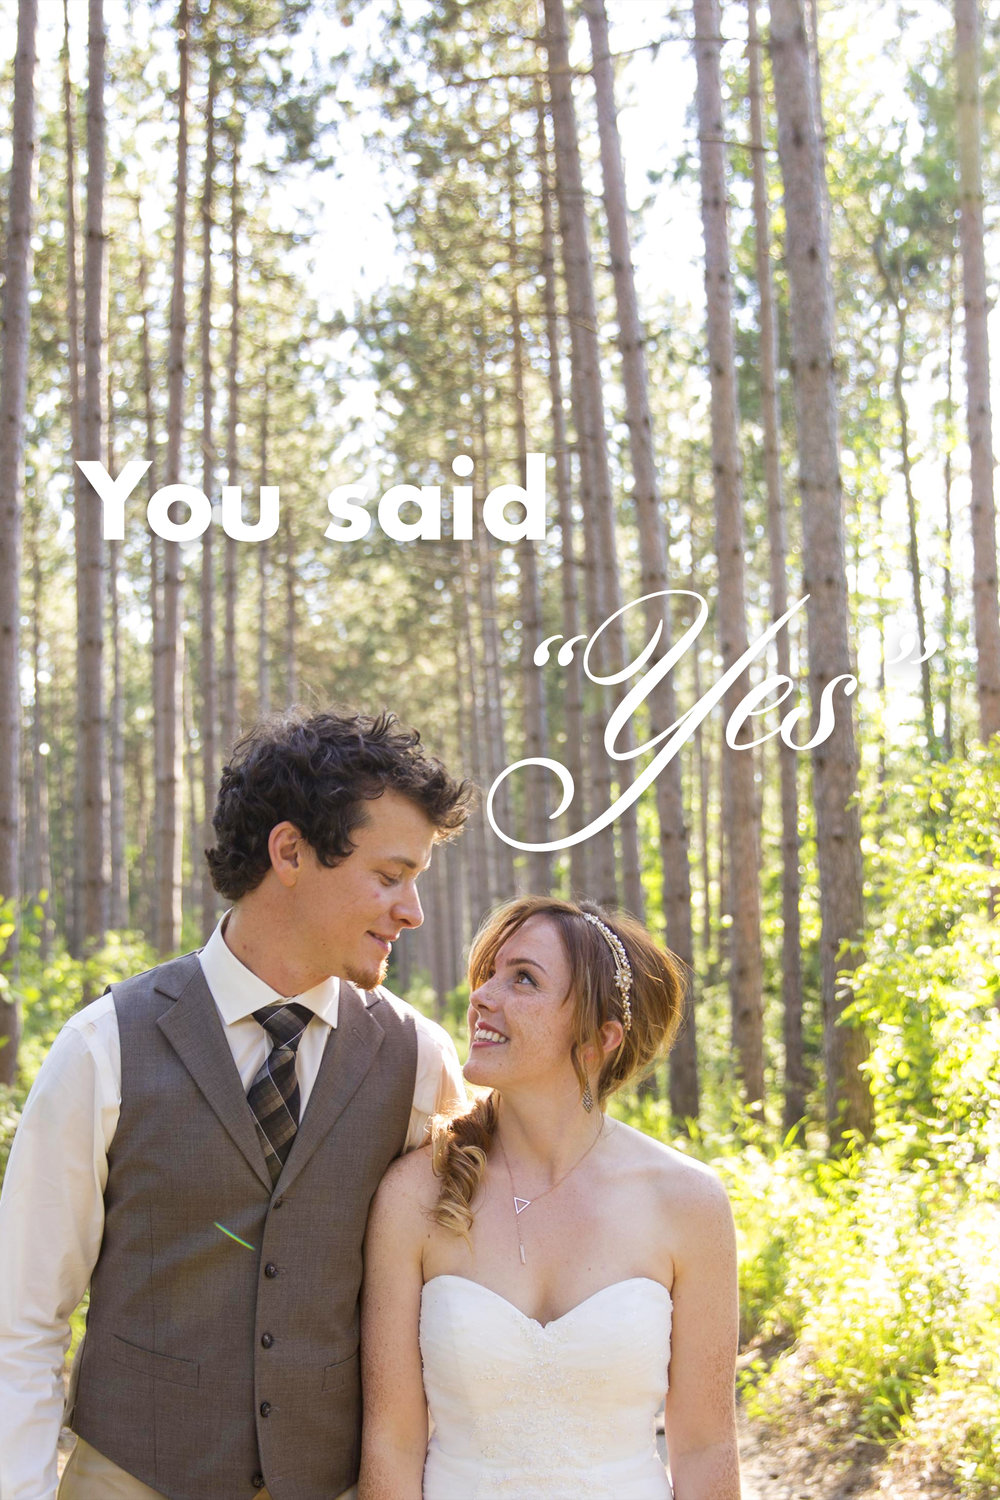 You Said Yes.jpg